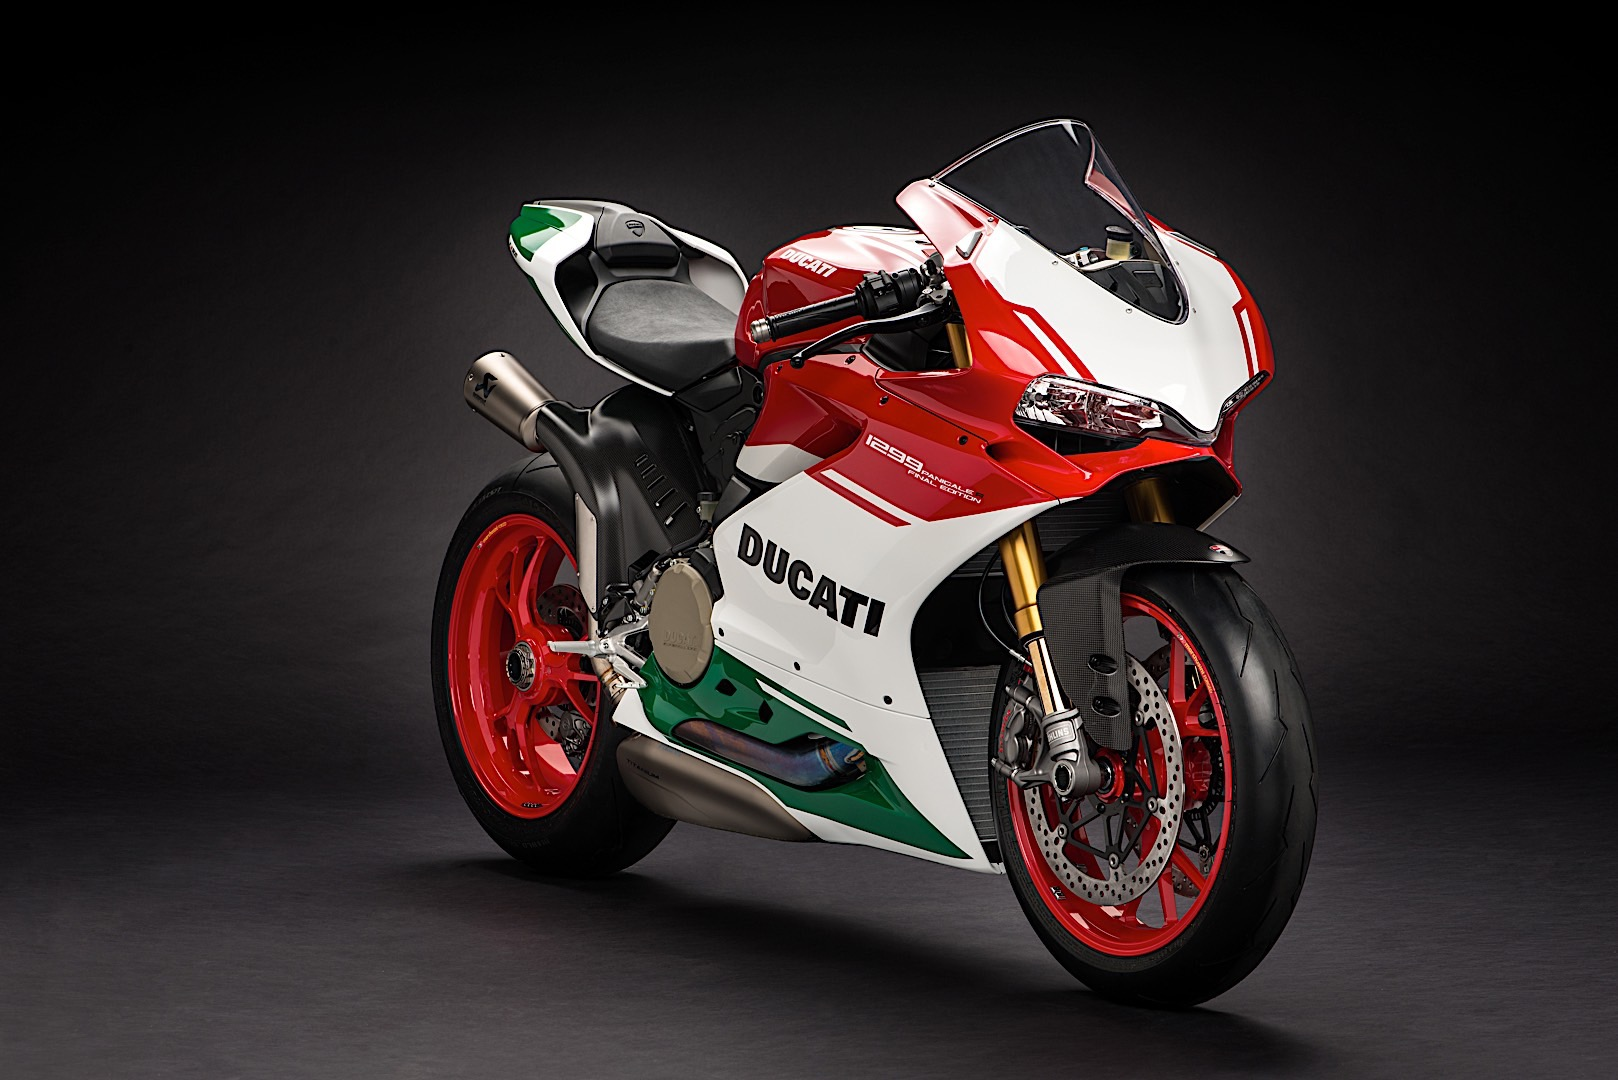 ducati 1299 panigale r final edition unveiled  a 209 hp